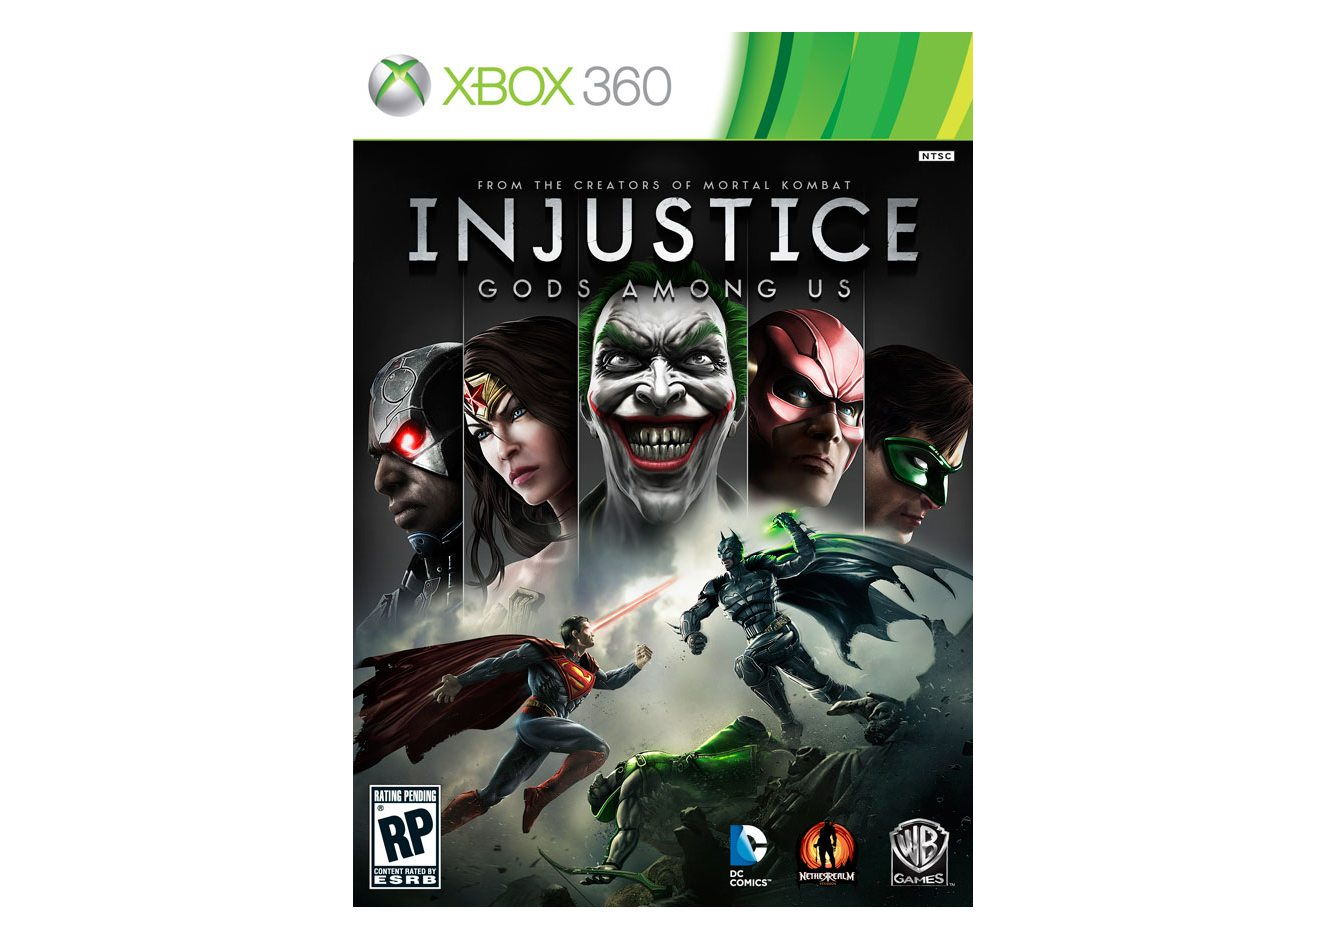 Xbox 360 Injustice: Gods Among Us Xbox 360